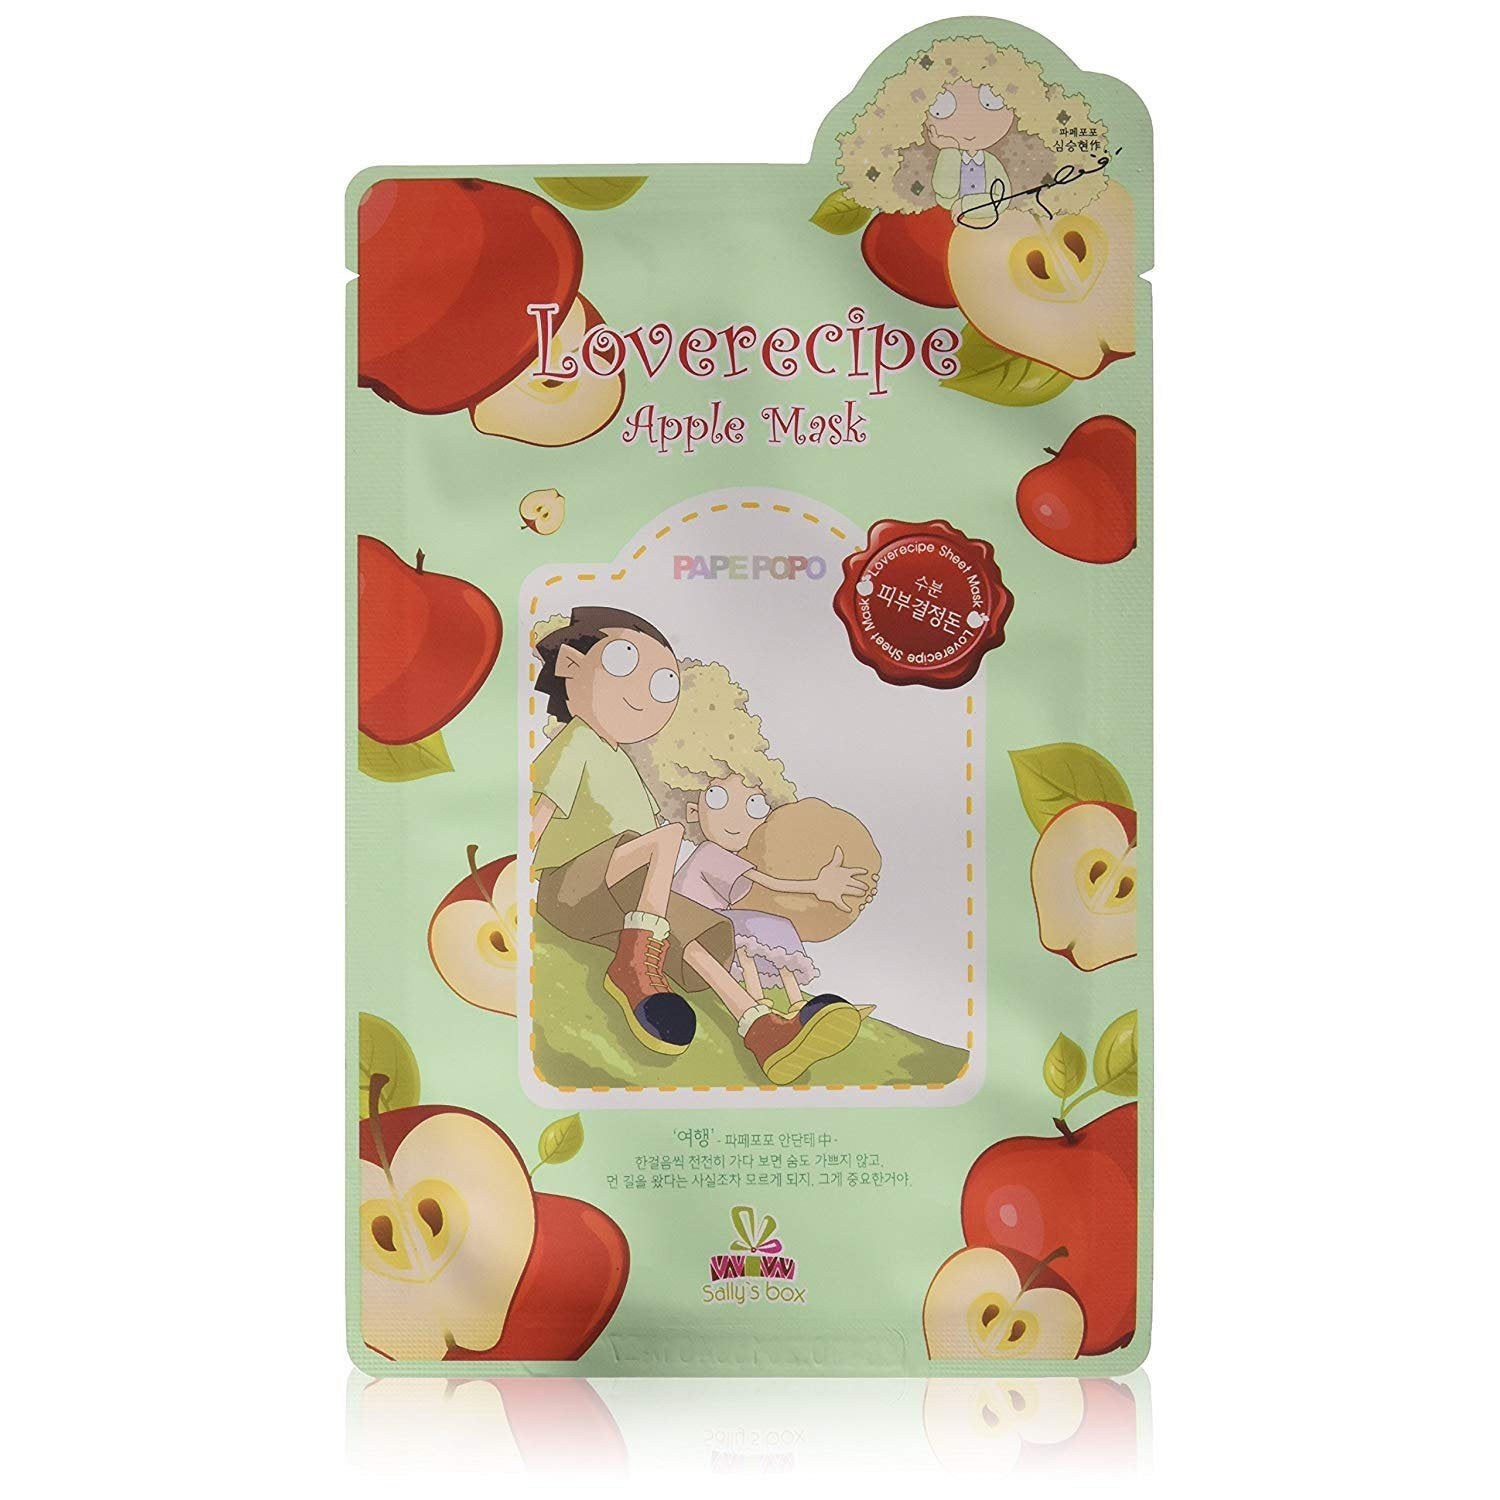 Loverecipe Apple Mask Sallys Box Maschere Viso